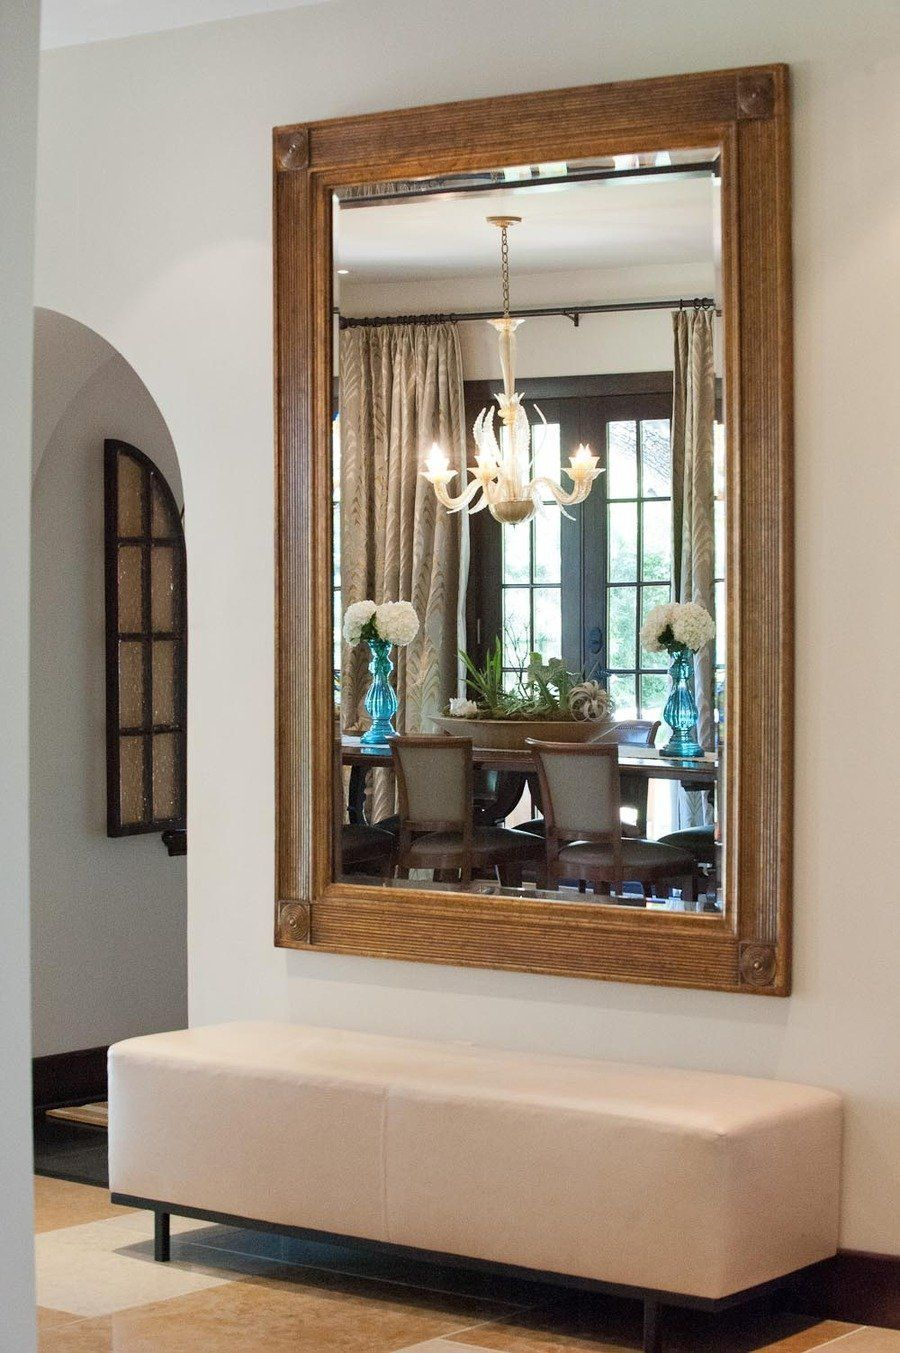 Large Mirror In Foyer : At home with kendra scott bench foyers and giant mirror